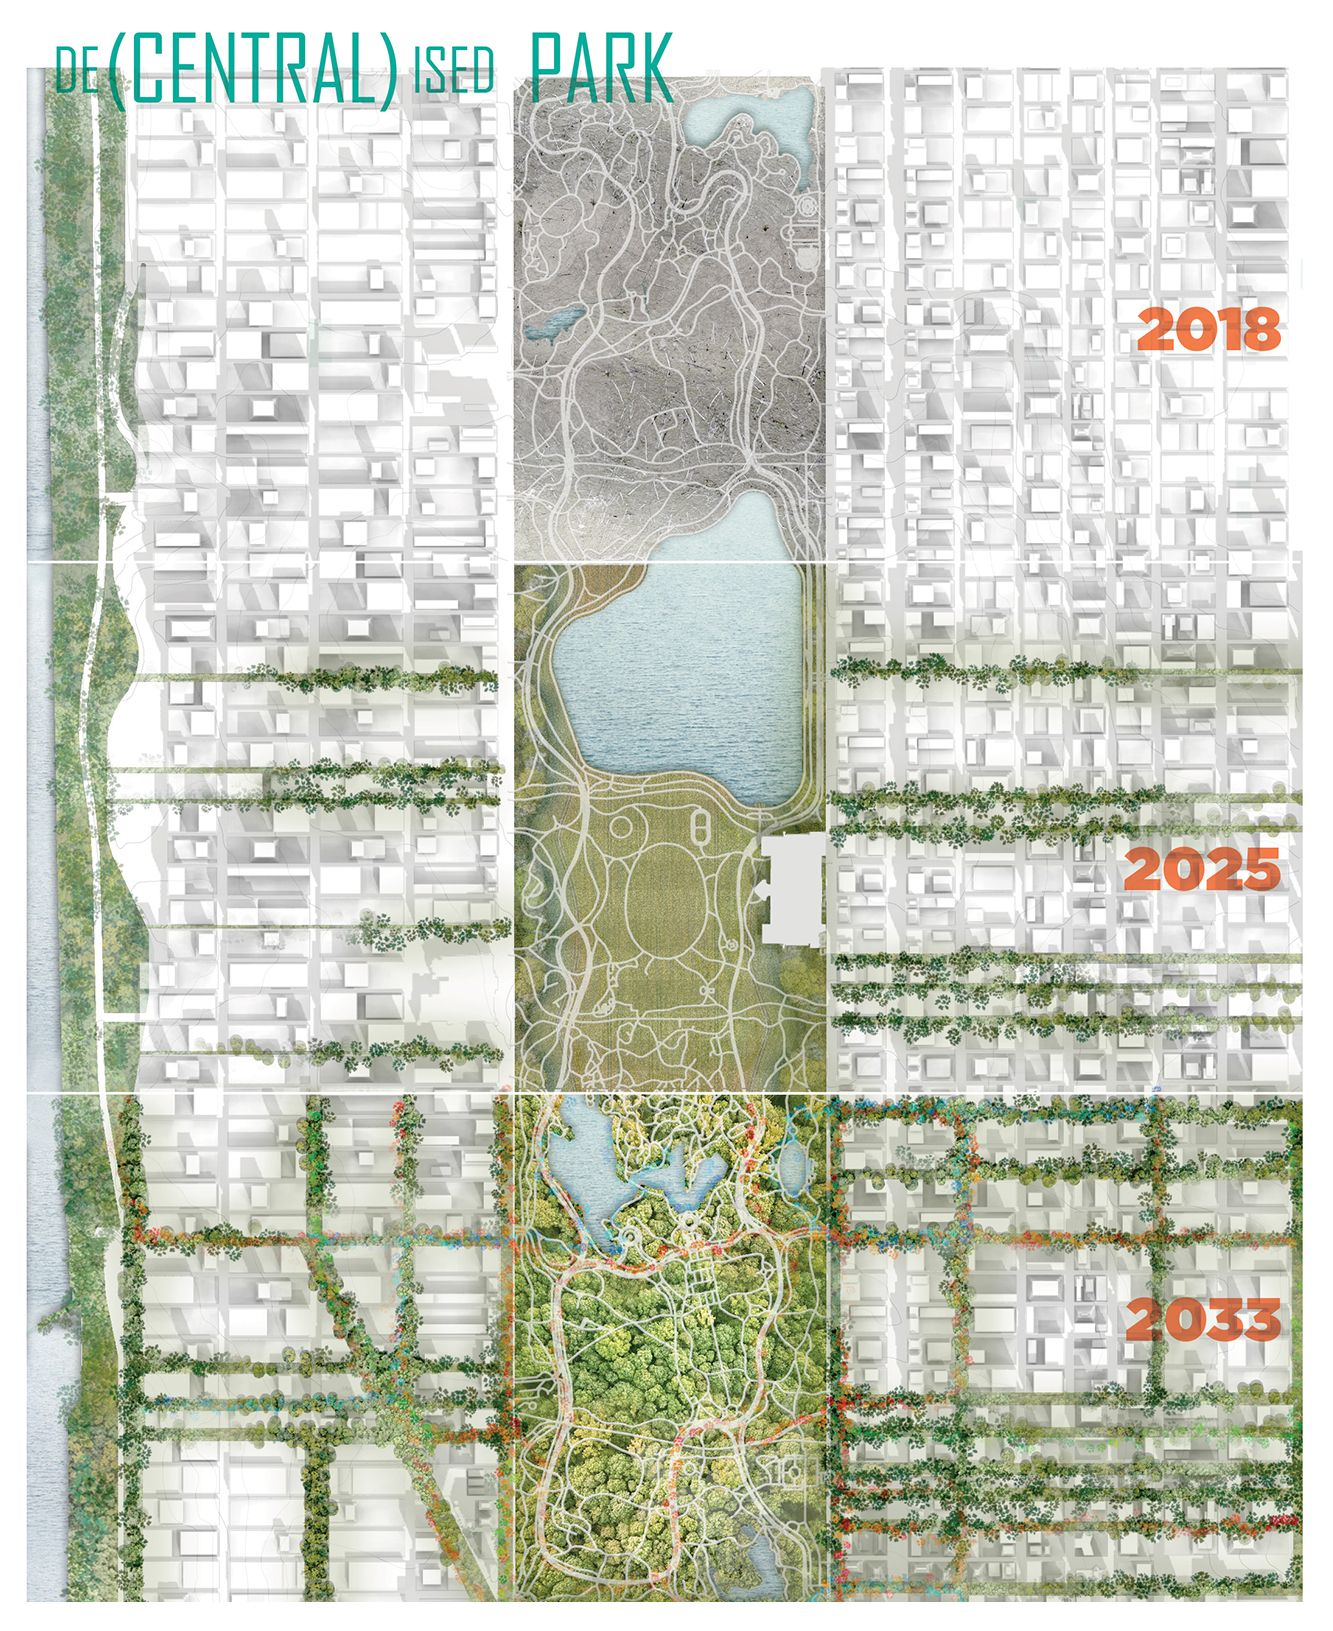 """LA+ICONOCLAST winner 4/5 - The """"De-Centralized Park"""" concept proposes to let the park rewild over time & to extend the park into all its connected streets. These green streets are made possible by a driverless rideshare system (Joe Rowling, Nick McLeod + Javier Arcila, Australia) https://t.co/v80Vk1szVh"""